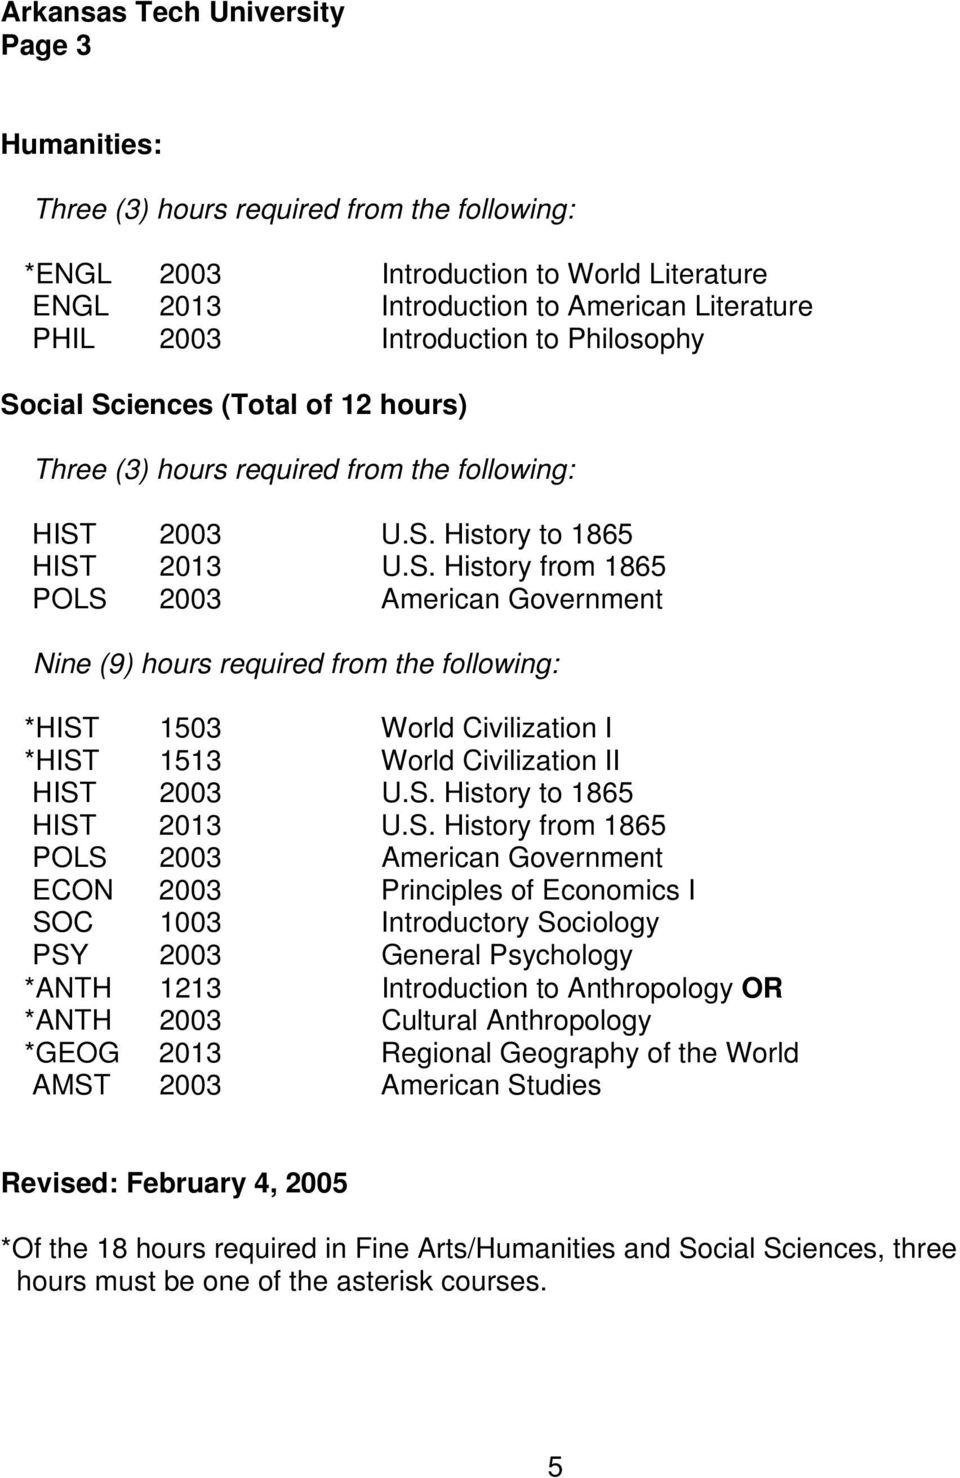 S. History to 1865 HIST 2013 U.S. History from 1865 POLS 2003 American Government ECON 2003 Principles of Economics I SOC 1003 Introductory Sociology PSY 2003 General Psychology *ANTH 1213